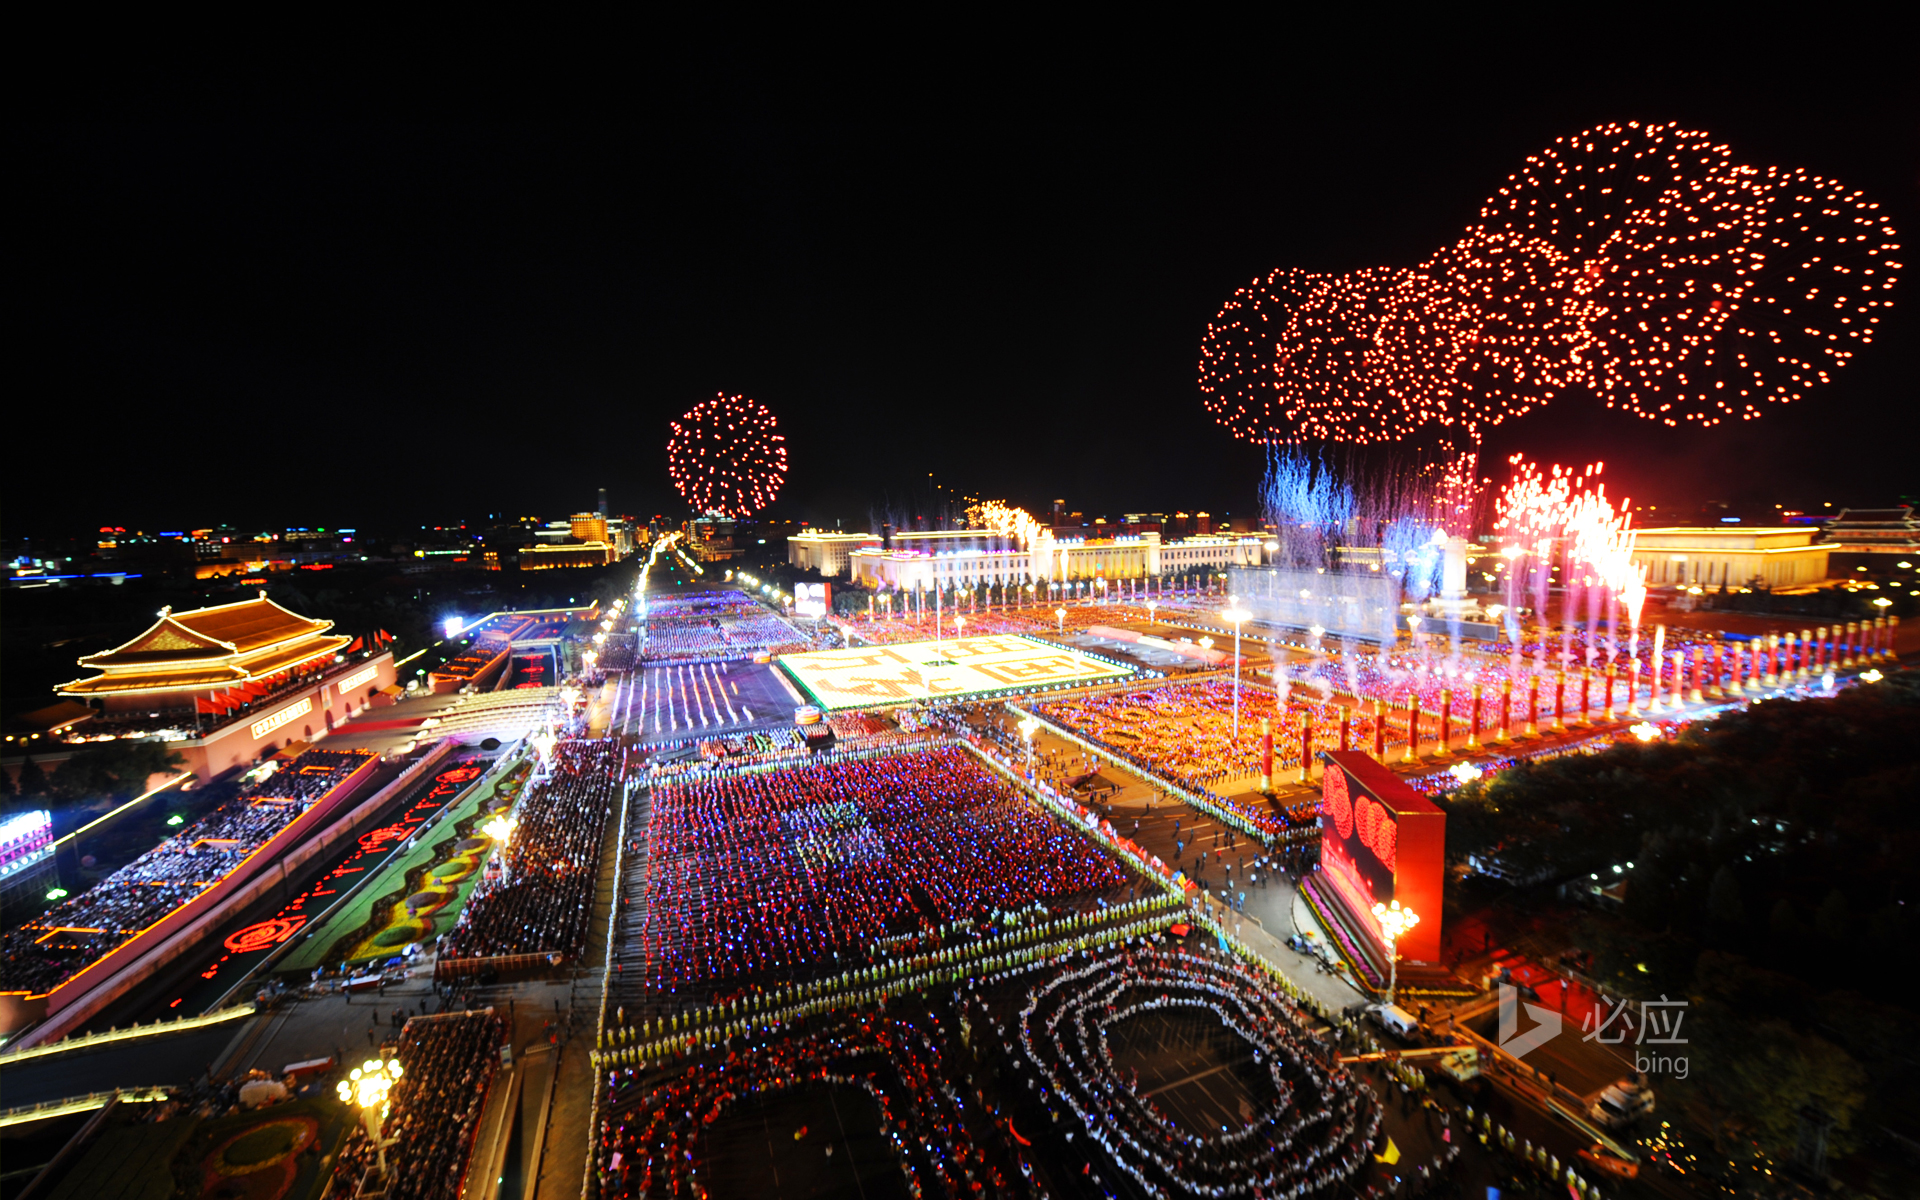 Fireworks over Tiananmen Square on National Day, October 1, 2009